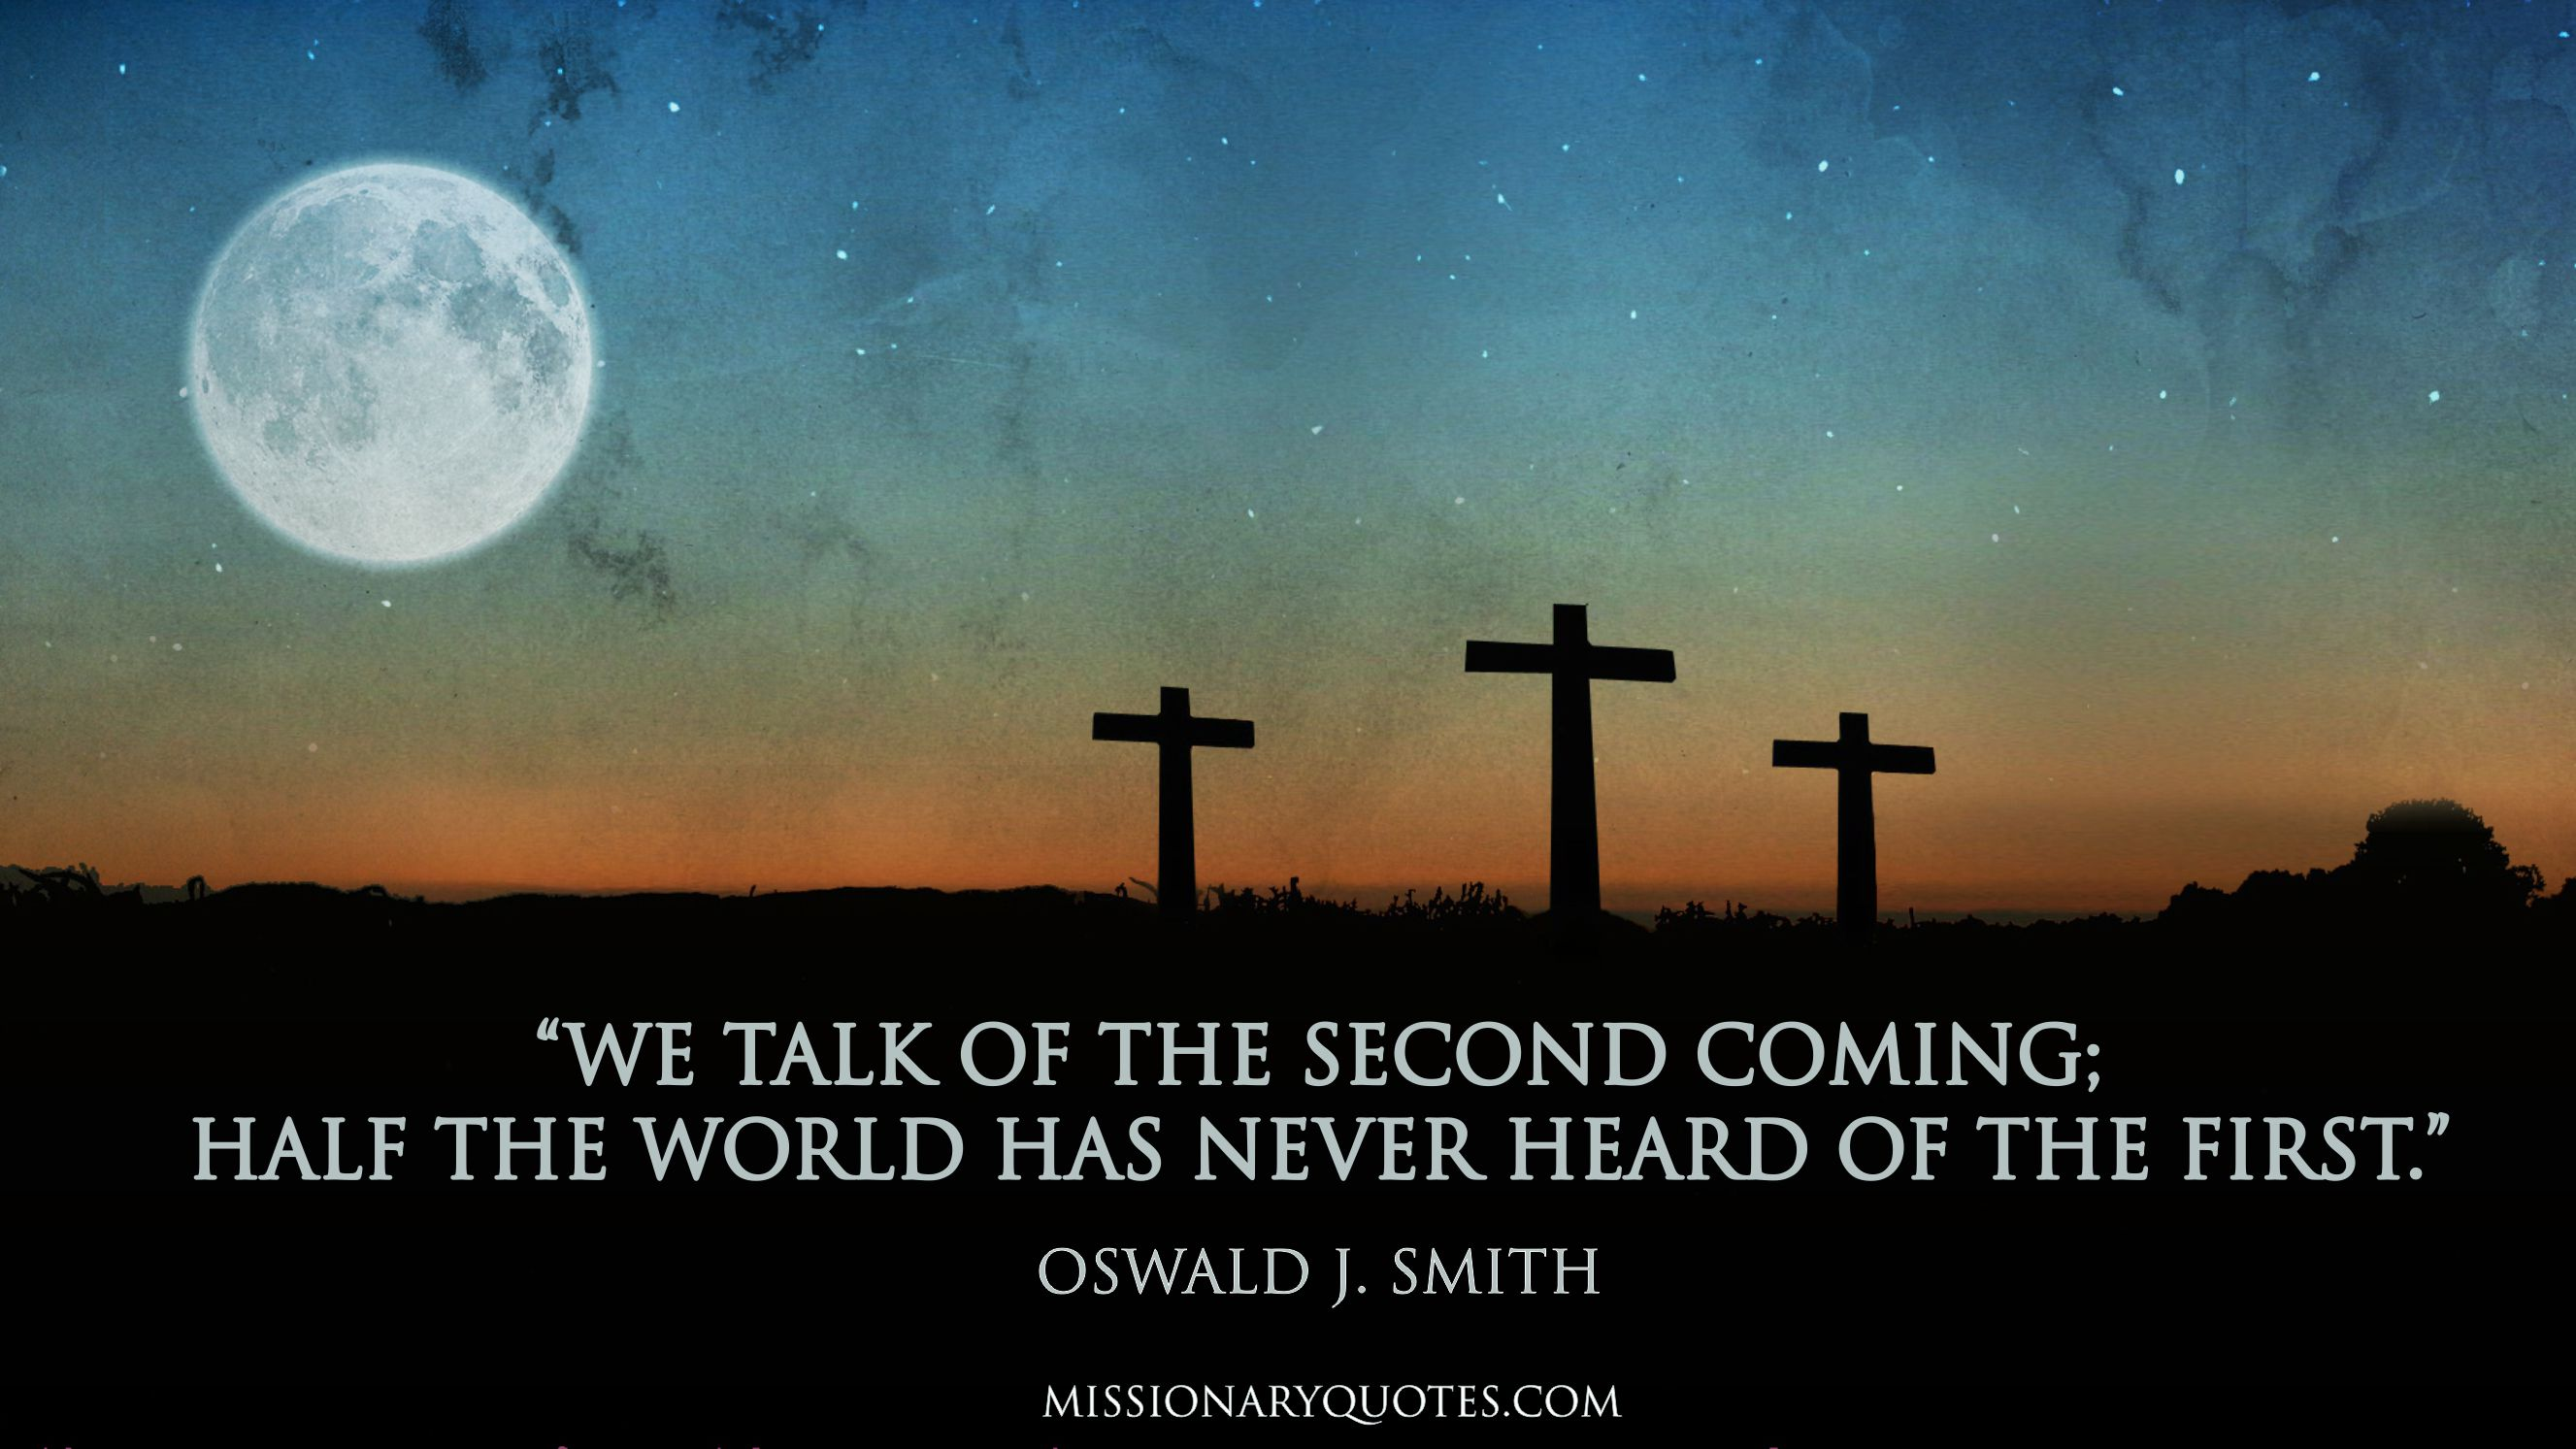 Oswald J Smith - We talk of the second coming